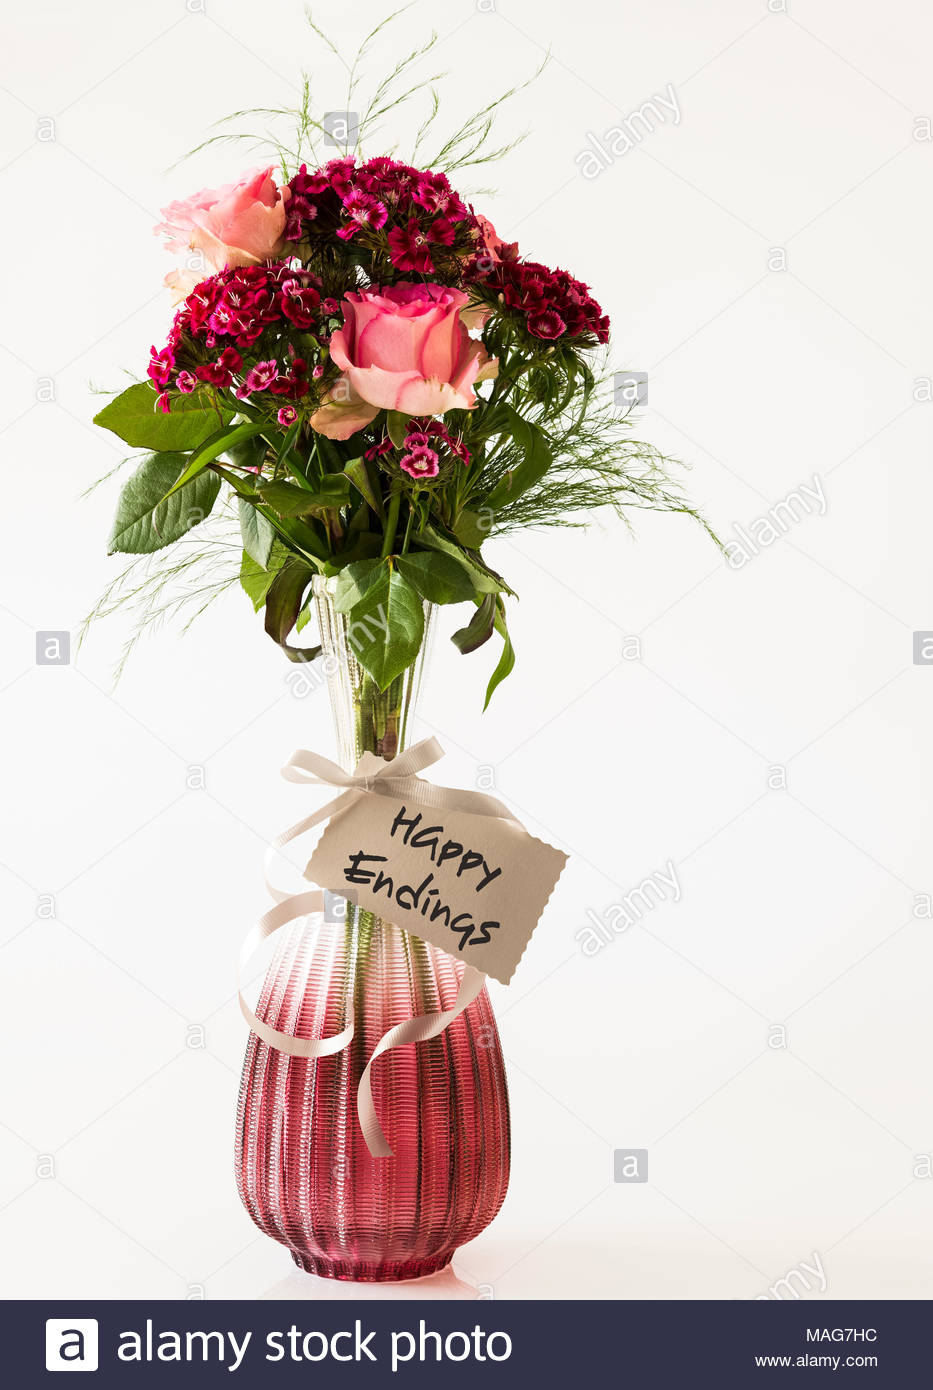 flowers in an elegant vase with the wording happy endings on the